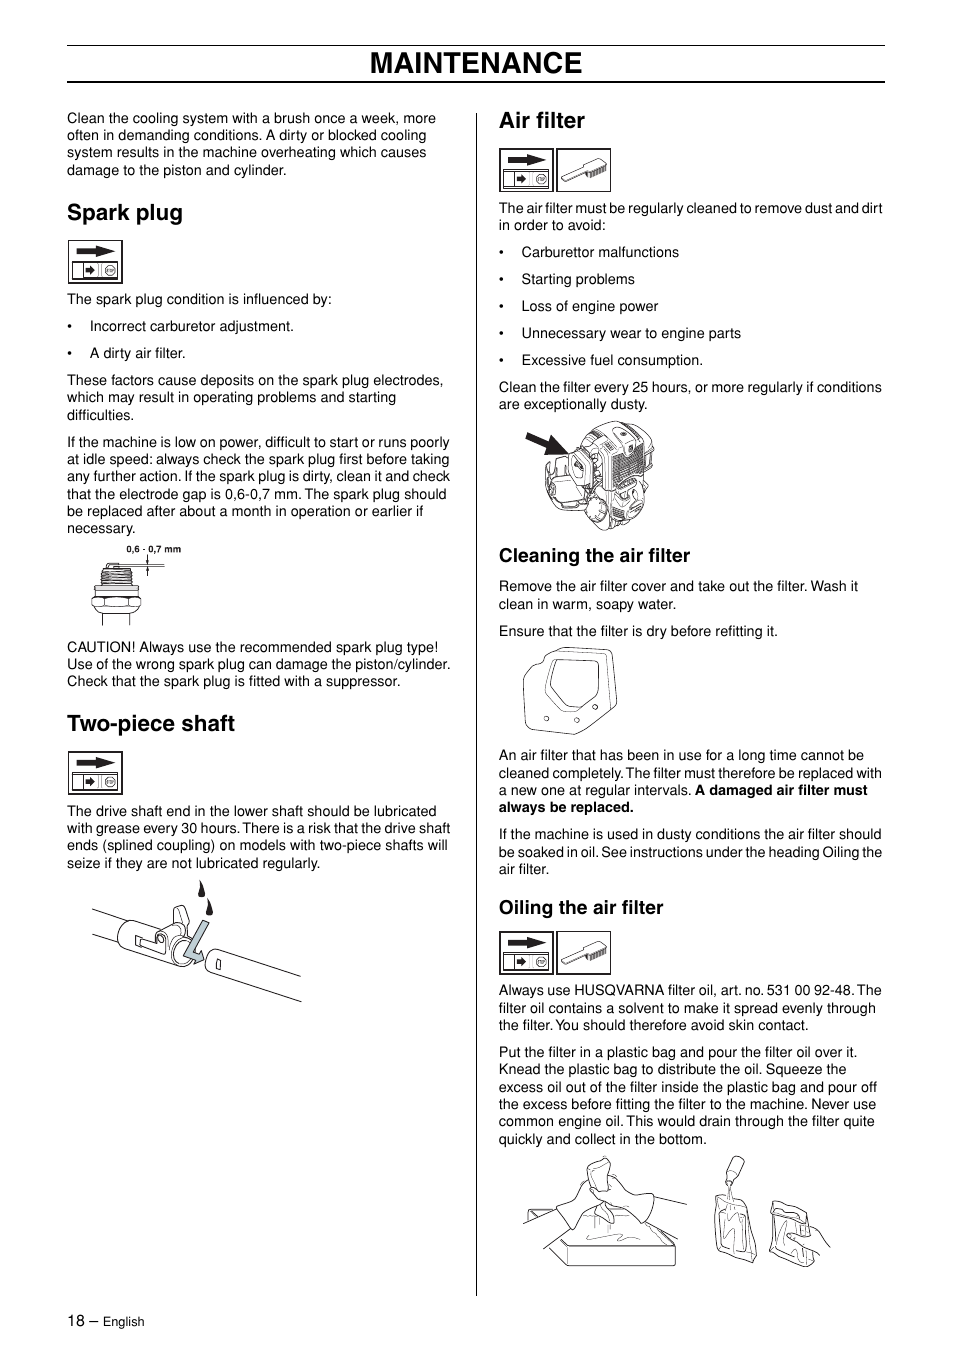 Spark plug, Two-piece shaft, Air filter | Husqvarna 324L User Manual | Page  18 / 28